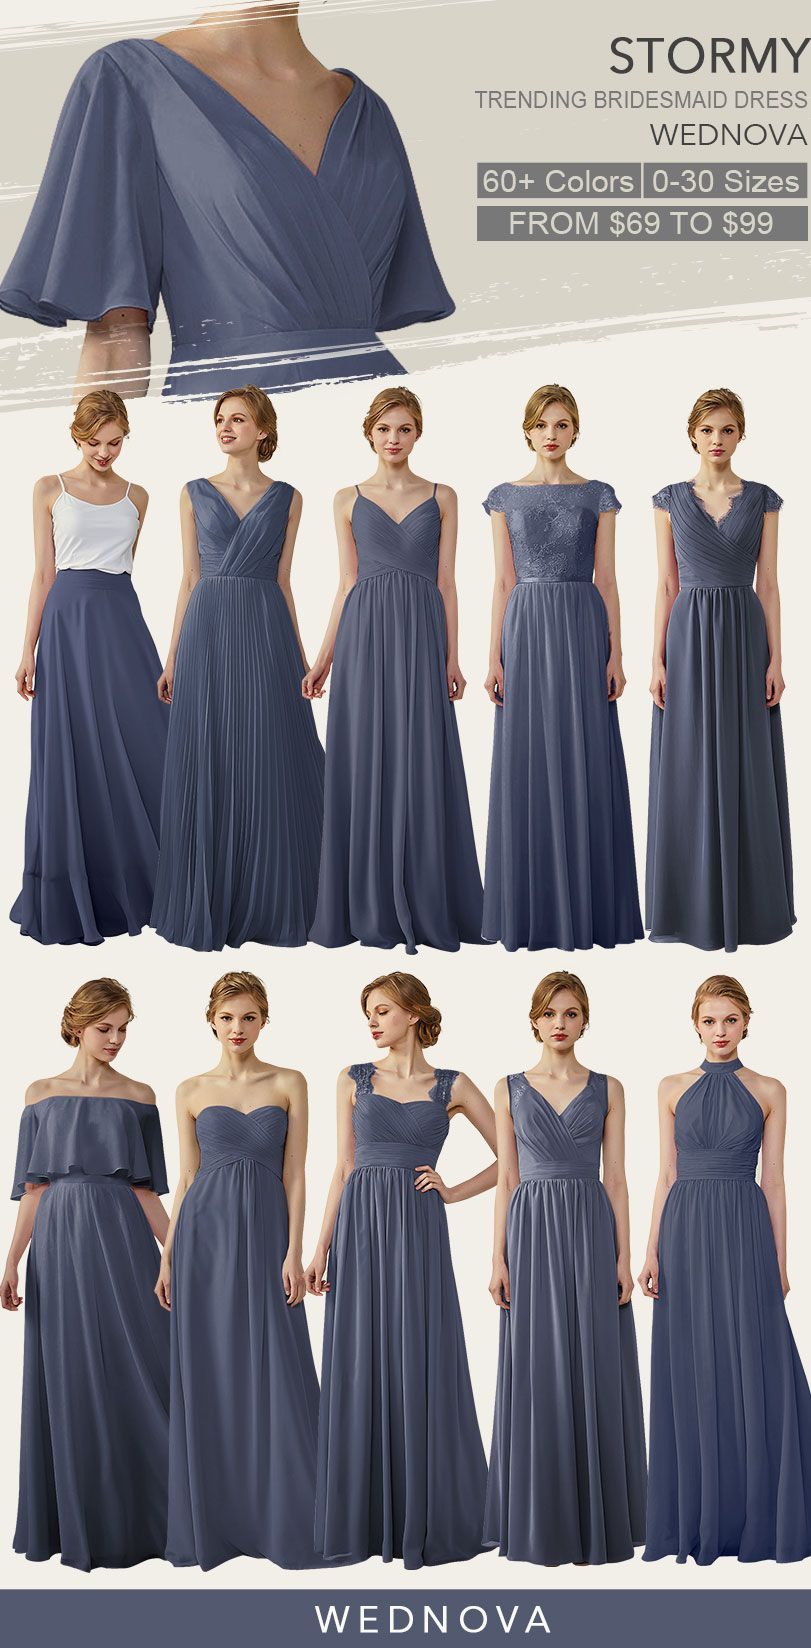 09b90267a41d Top 10 stormy bridesmaid dresses chiffon v neck dress you can wear again  wedding  v neck bridesmaid dress